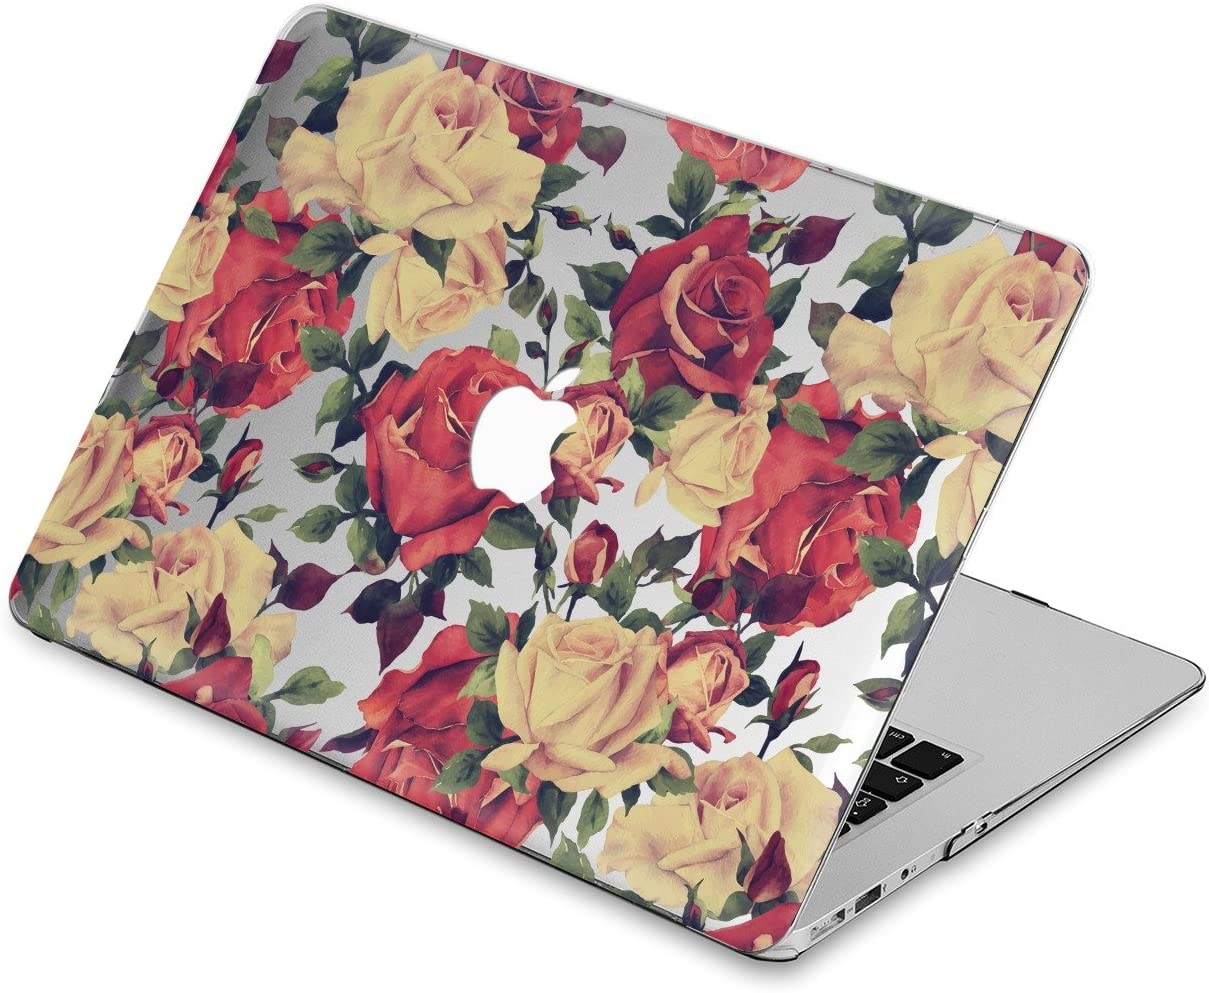 A1369 /& A1466 Air 13 Durable Laptop Case Art Designed Protective Cover for MacBook Laptop Modern Hard Case , Pale Marble